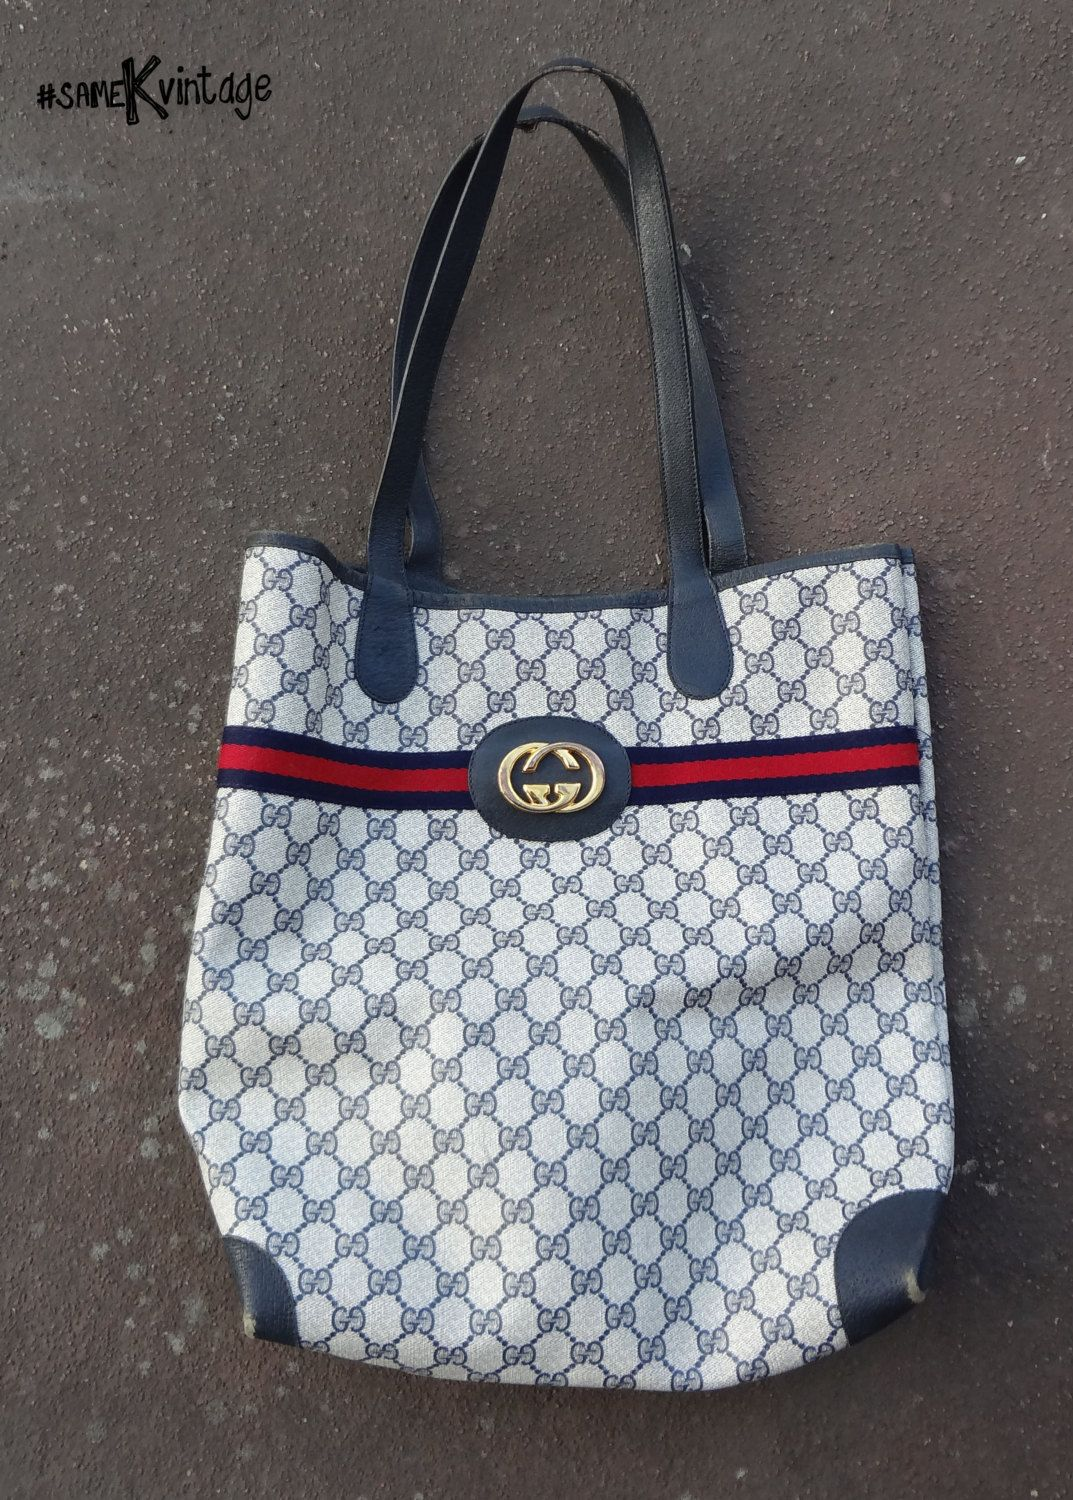 8e2d733eafe5 Authentic  Vintage  GUCCI Large  Tote GG Blue Monogram  002-904-0131   Shoppers Tote  Shoulder  Bag  Designer Fashion  Free Shipping USA by   sameKVintage on ...